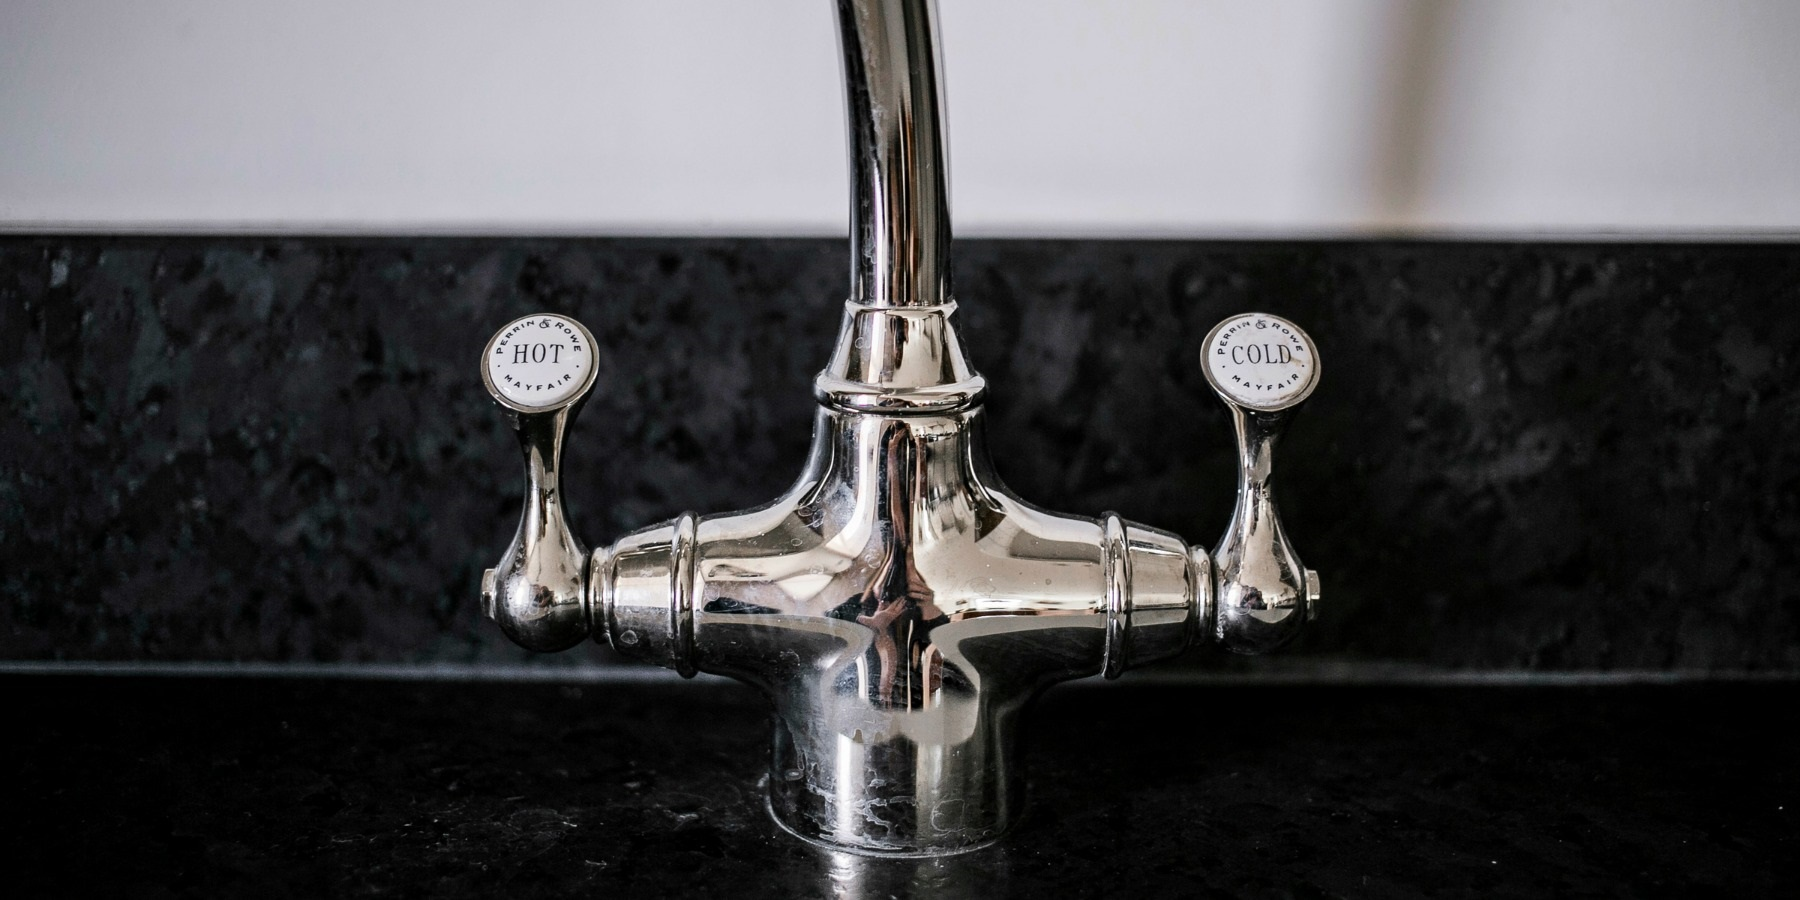 p&r tap - Hurst kitchen sink and tap